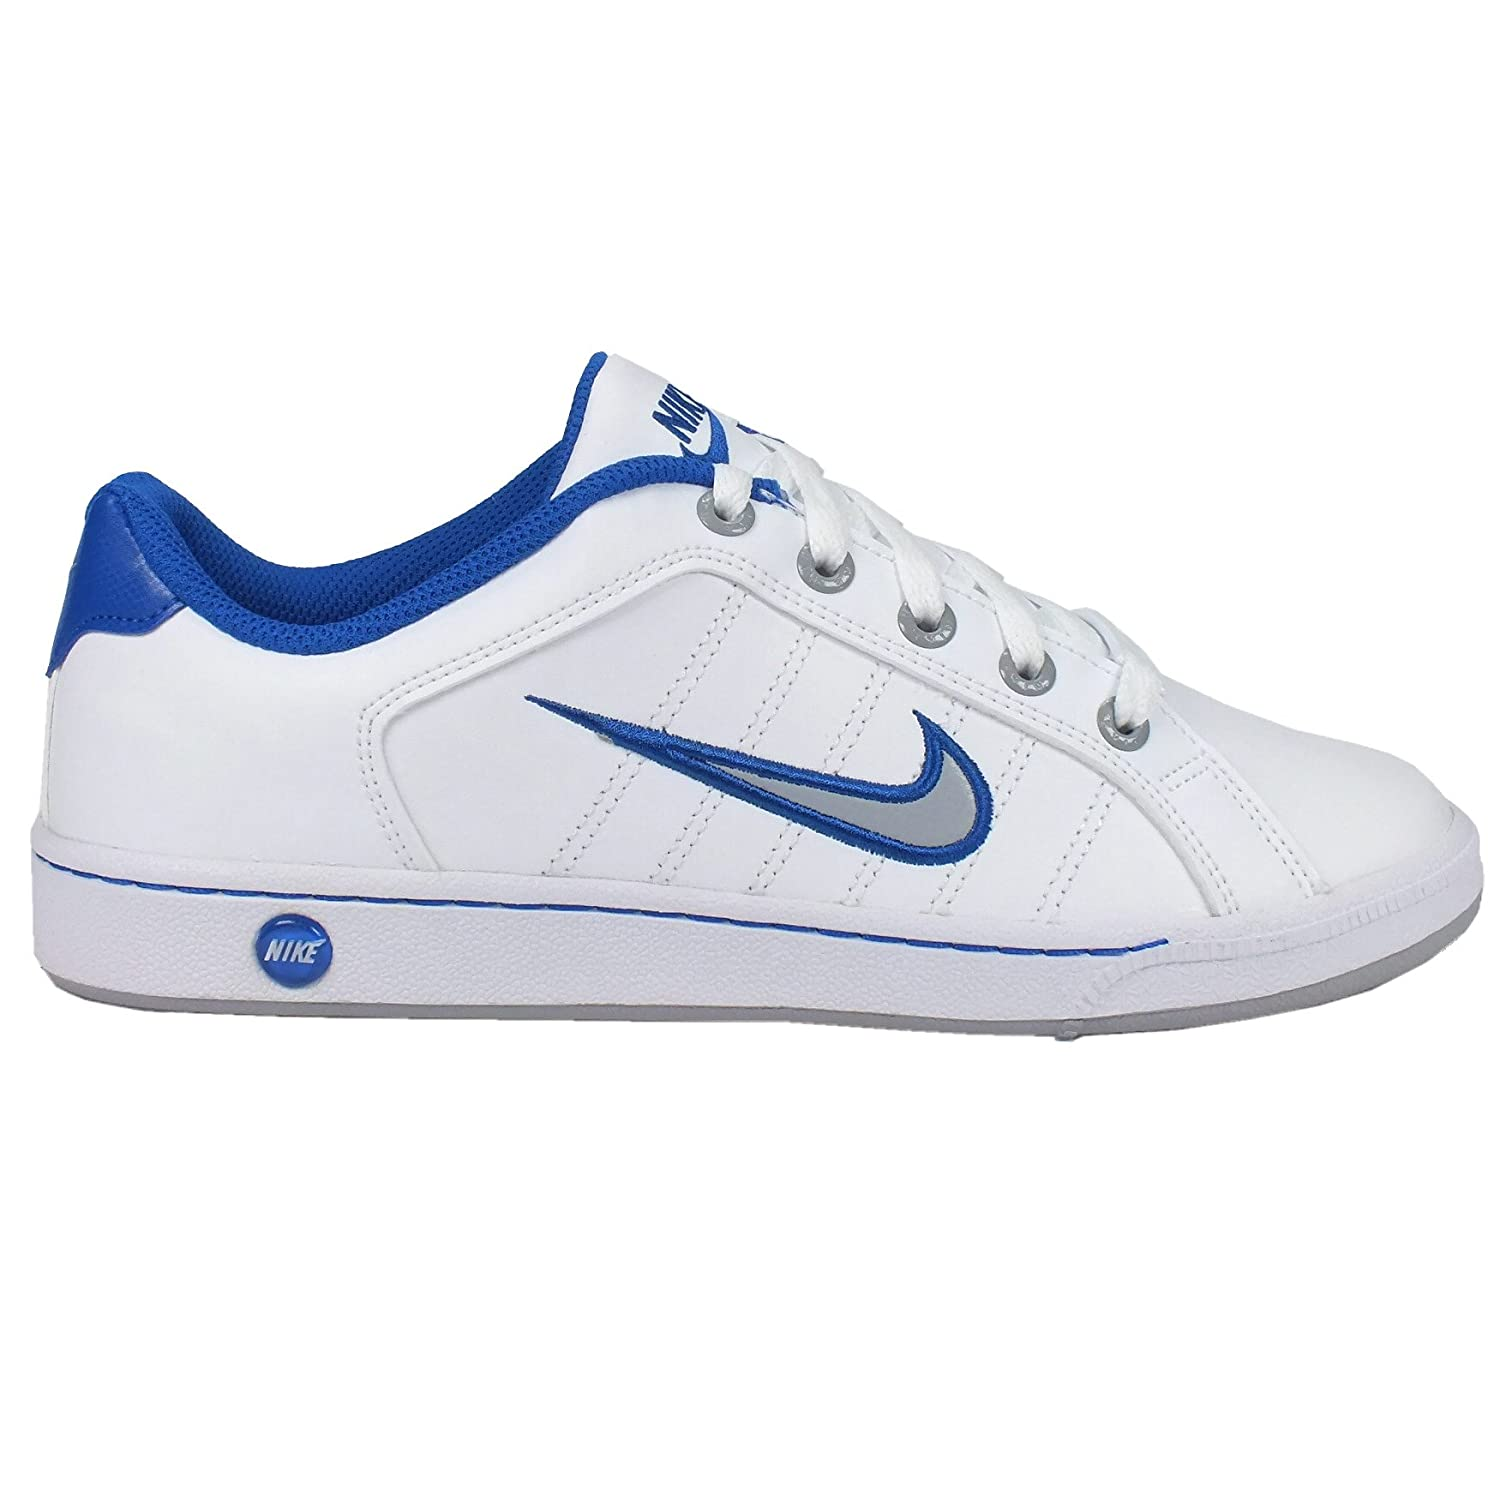 nike court tradition hombre